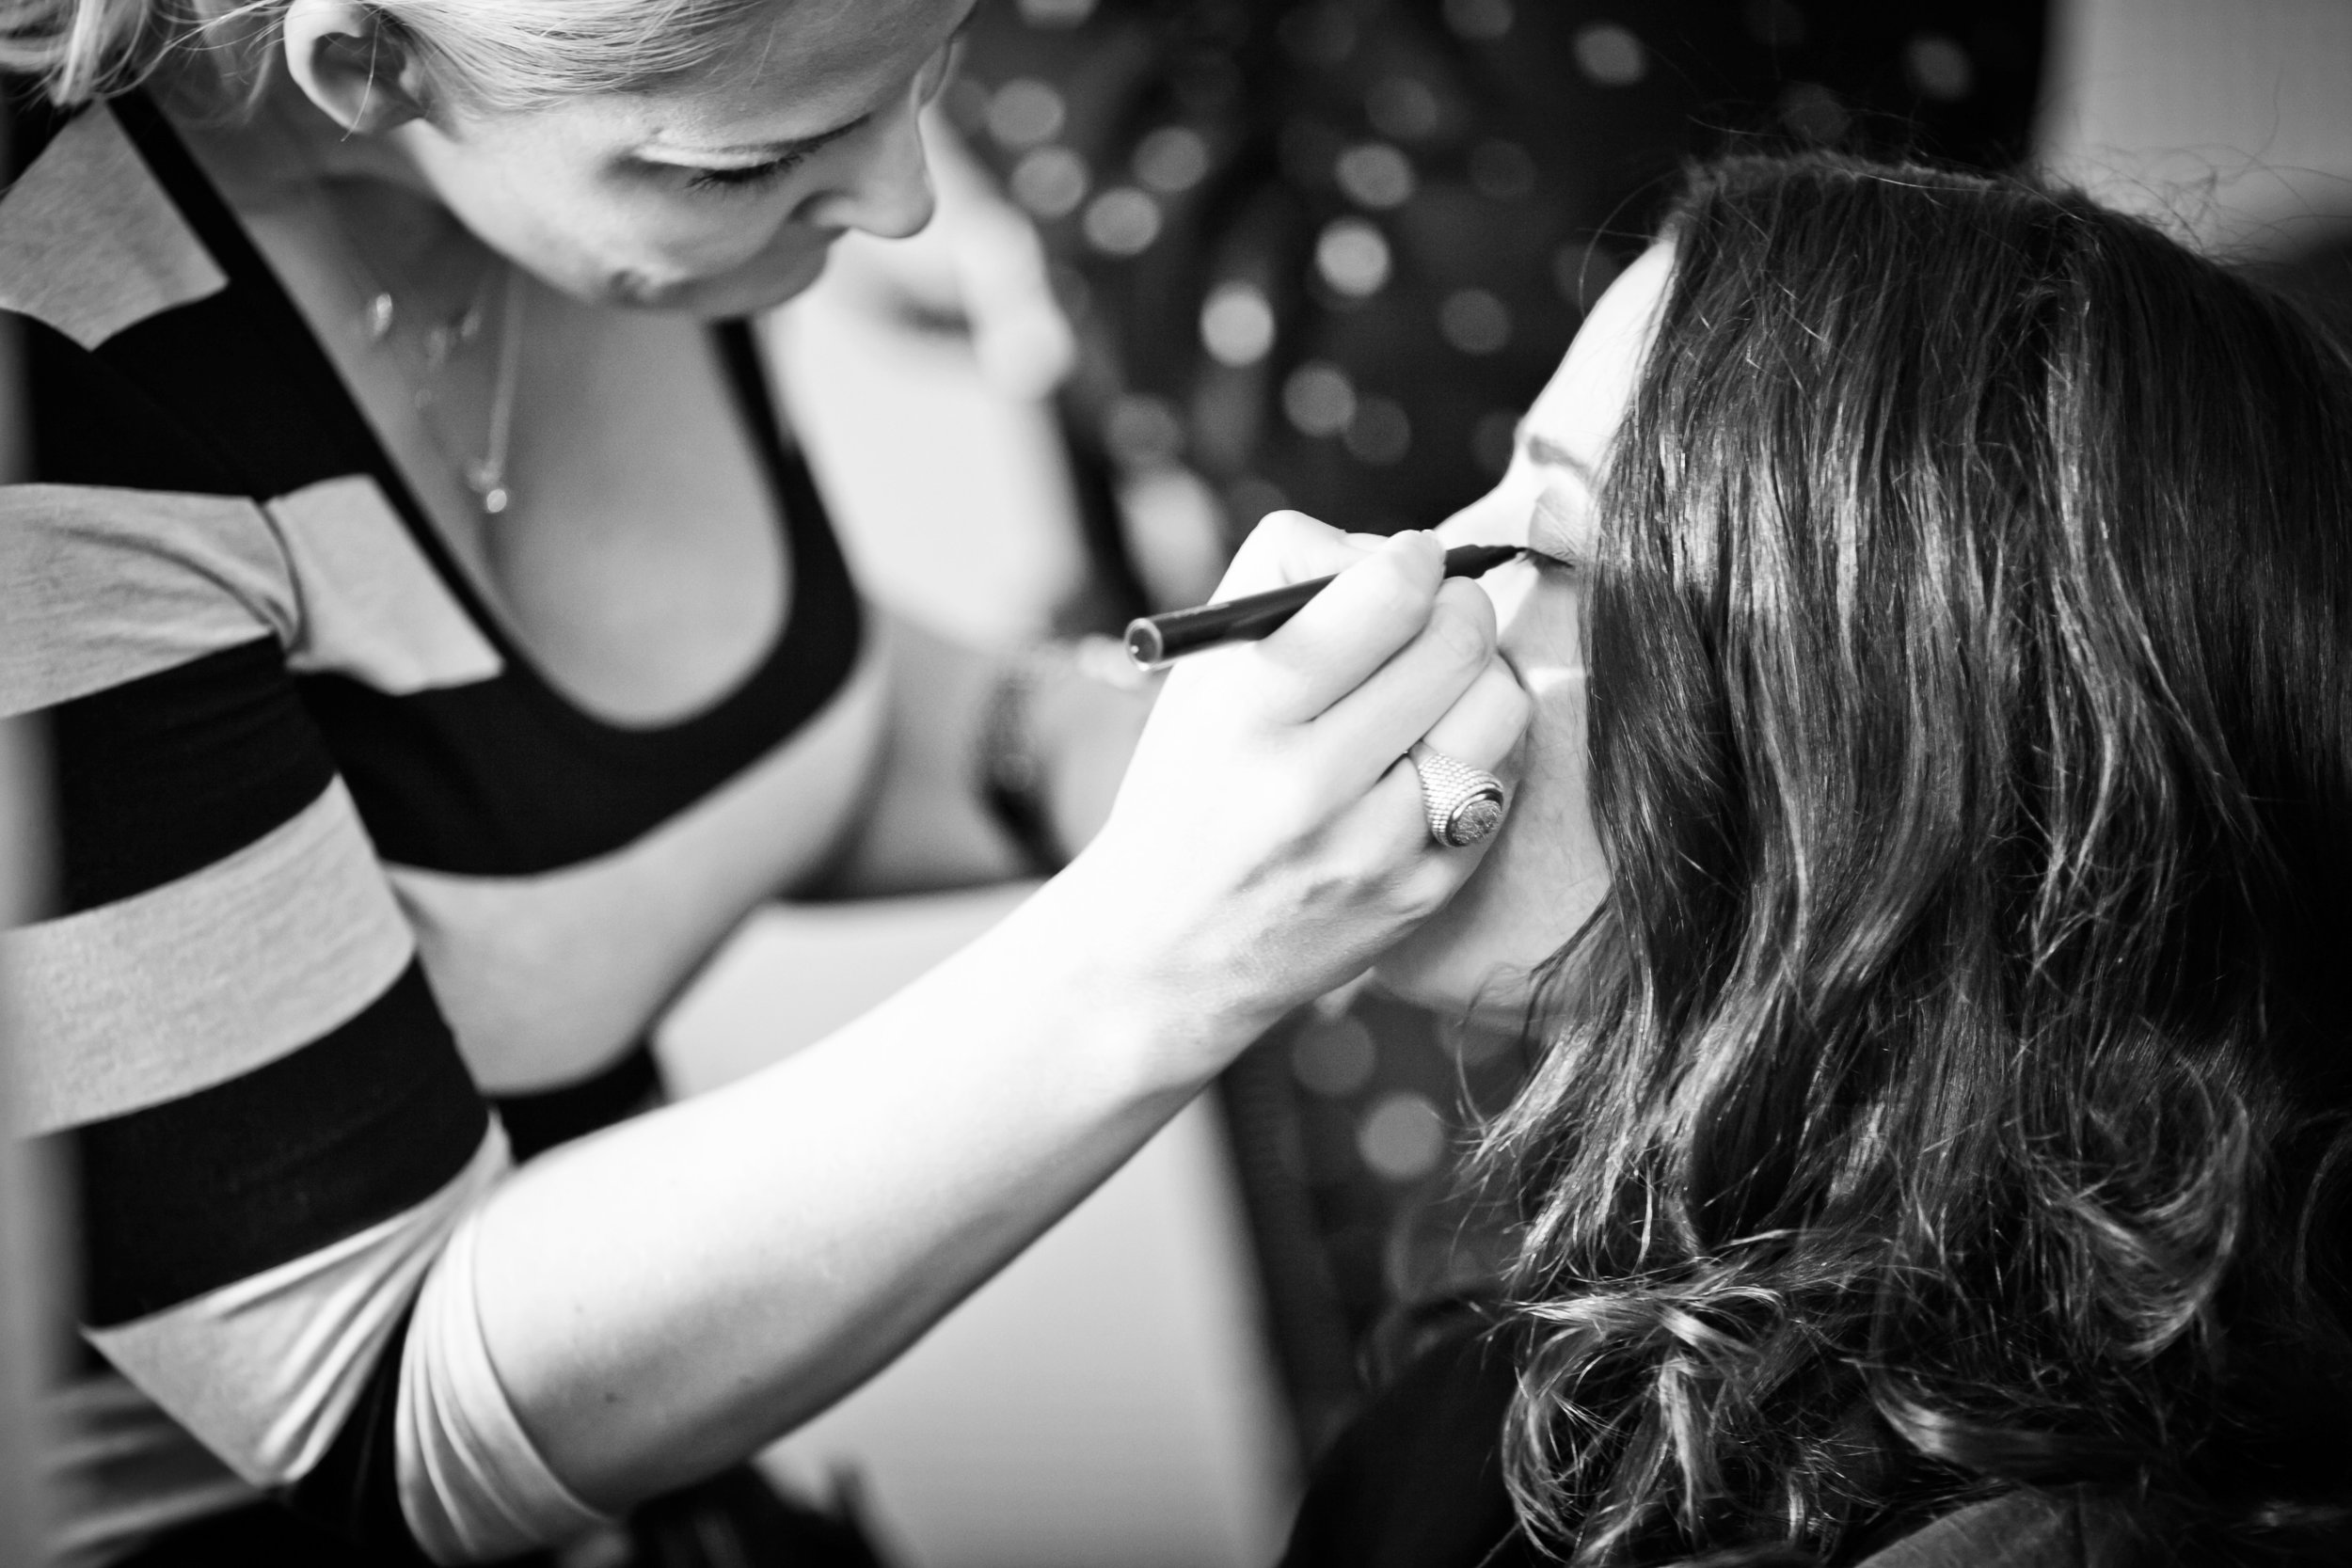 6 bride getting ready bride getting ready poses bride getting makeup done photos candid bride photos Life Design Events.jpg